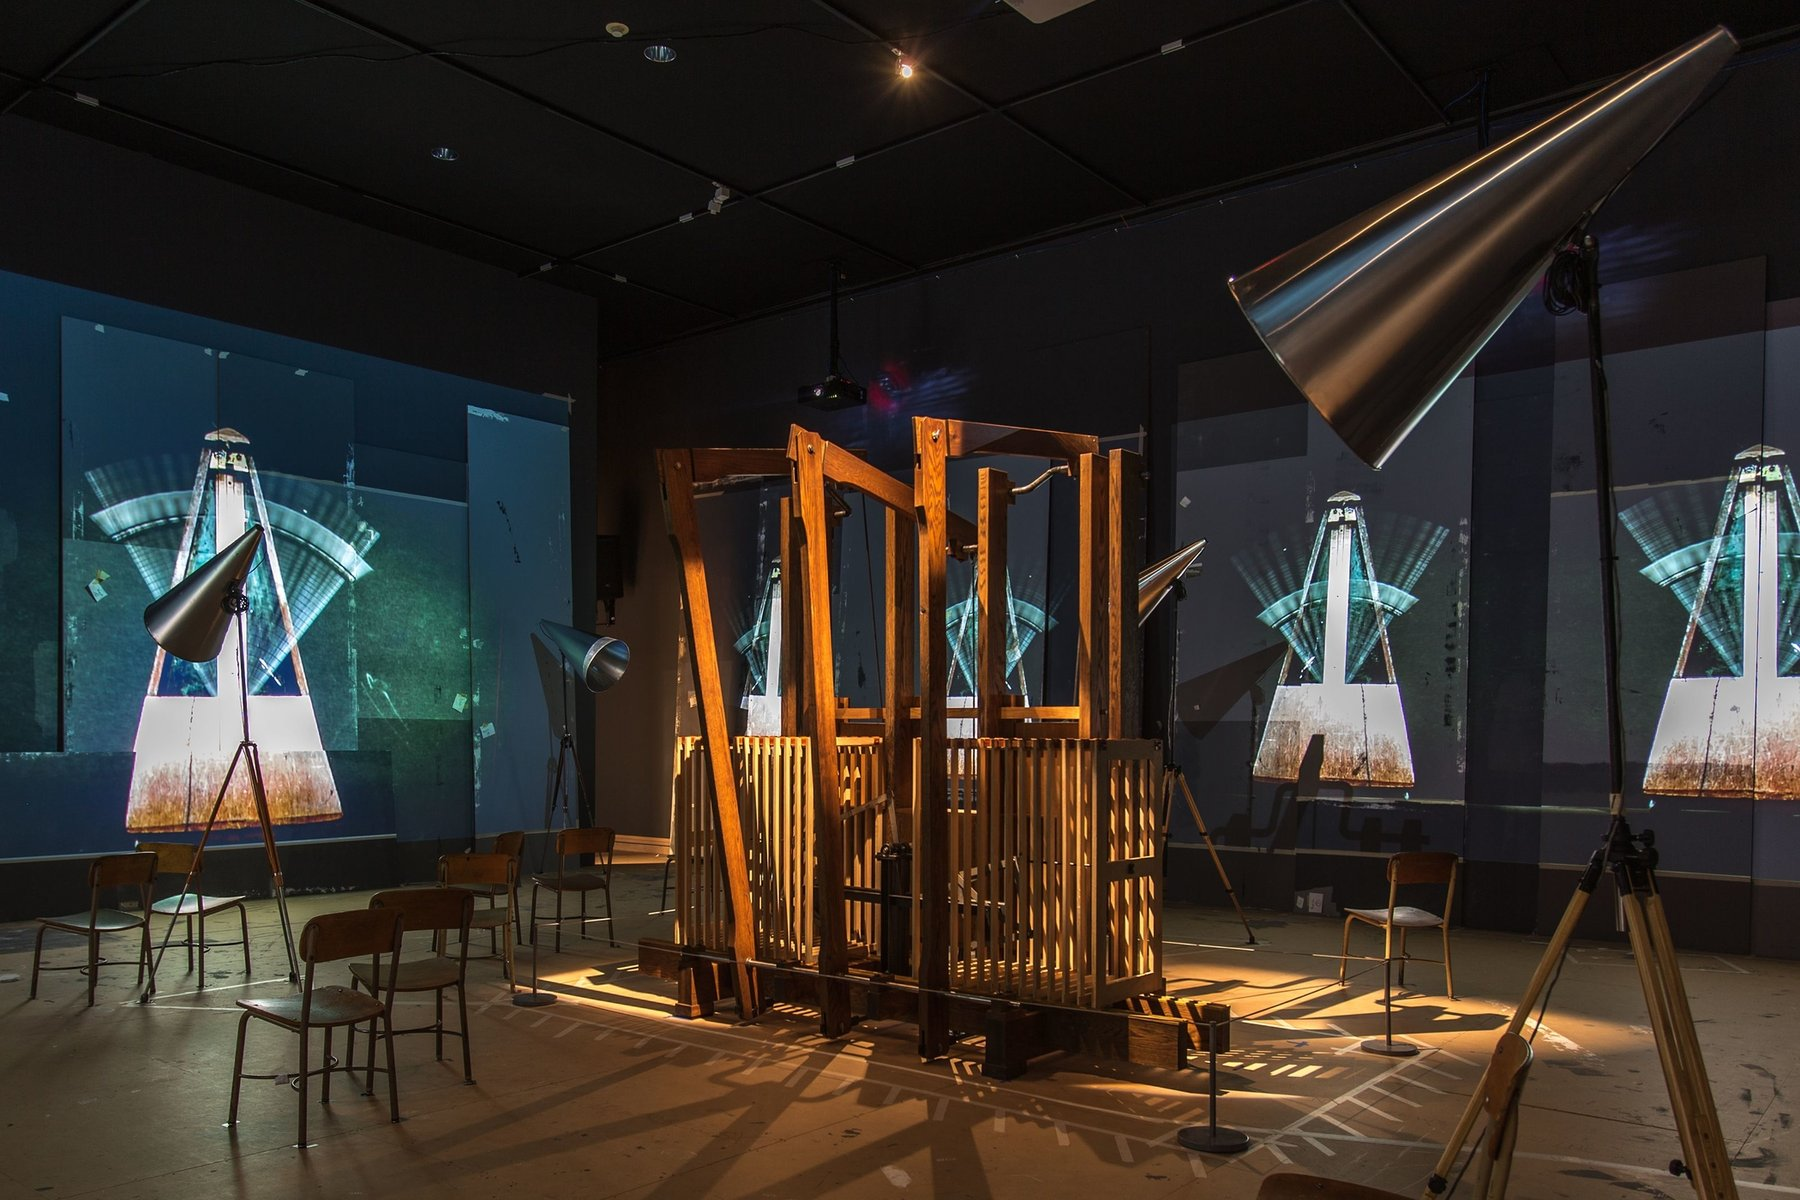 Installation view, William Kentridge, The Refusal of Time